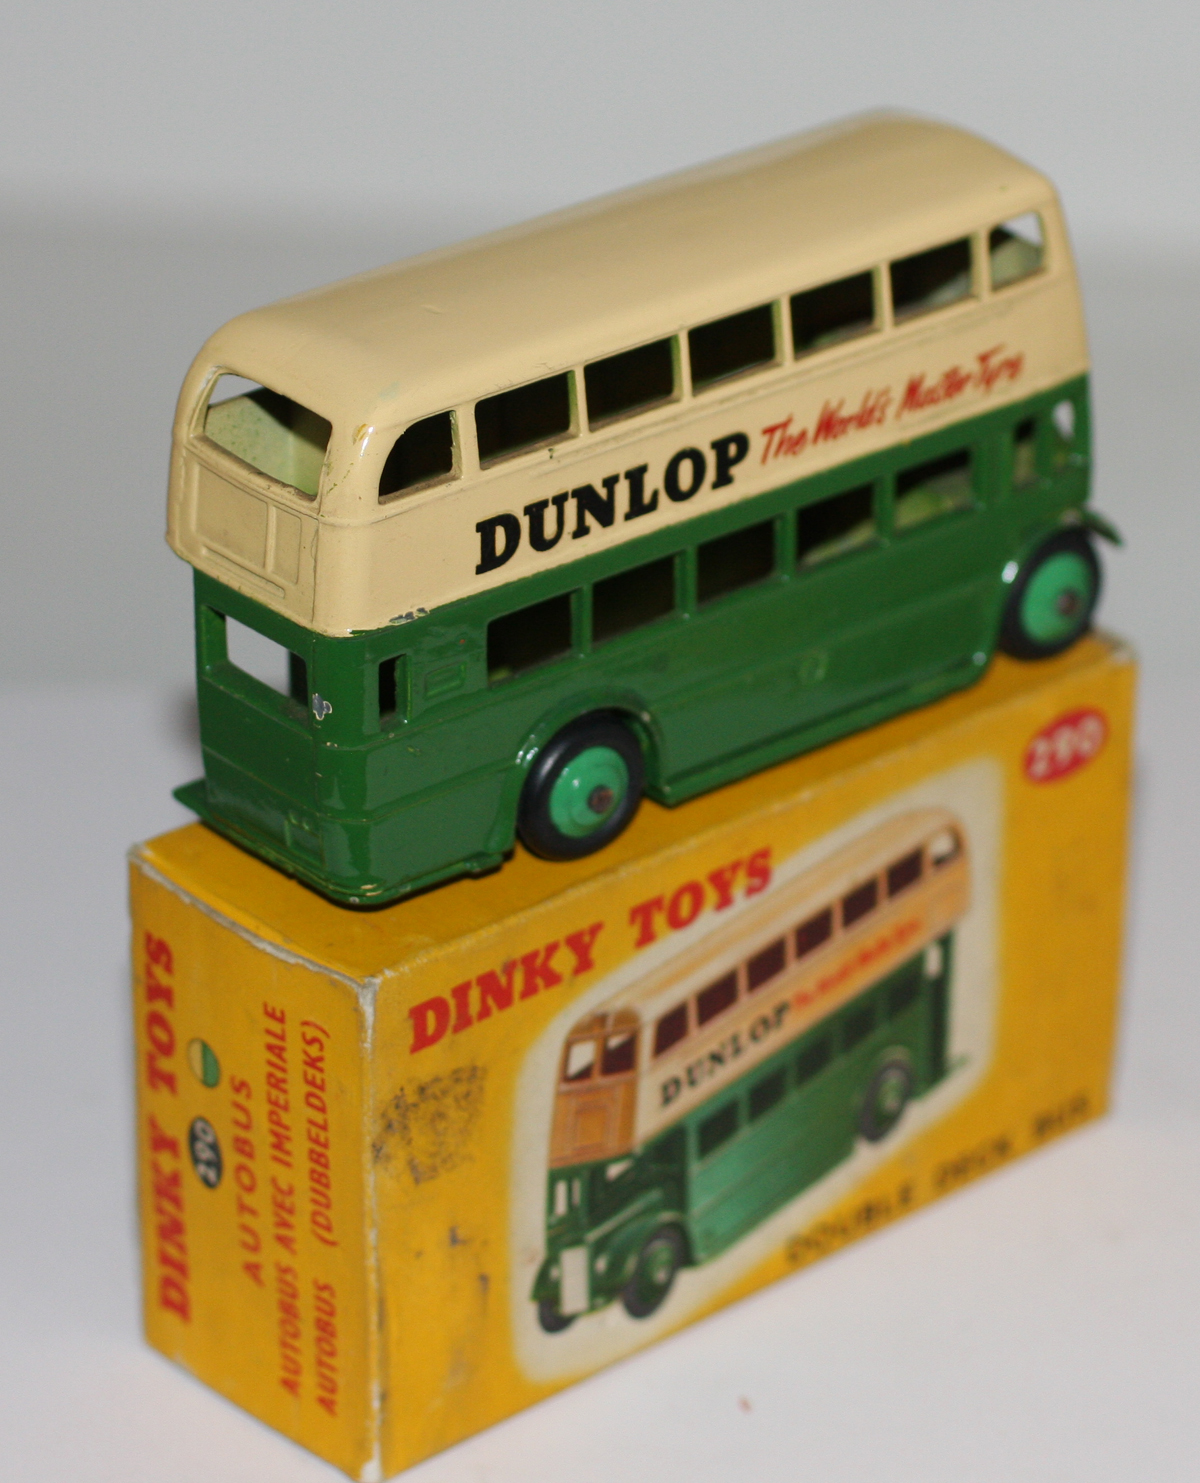 dinky toys 290 double decker bus green upright dunlop aec. Black Bedroom Furniture Sets. Home Design Ideas